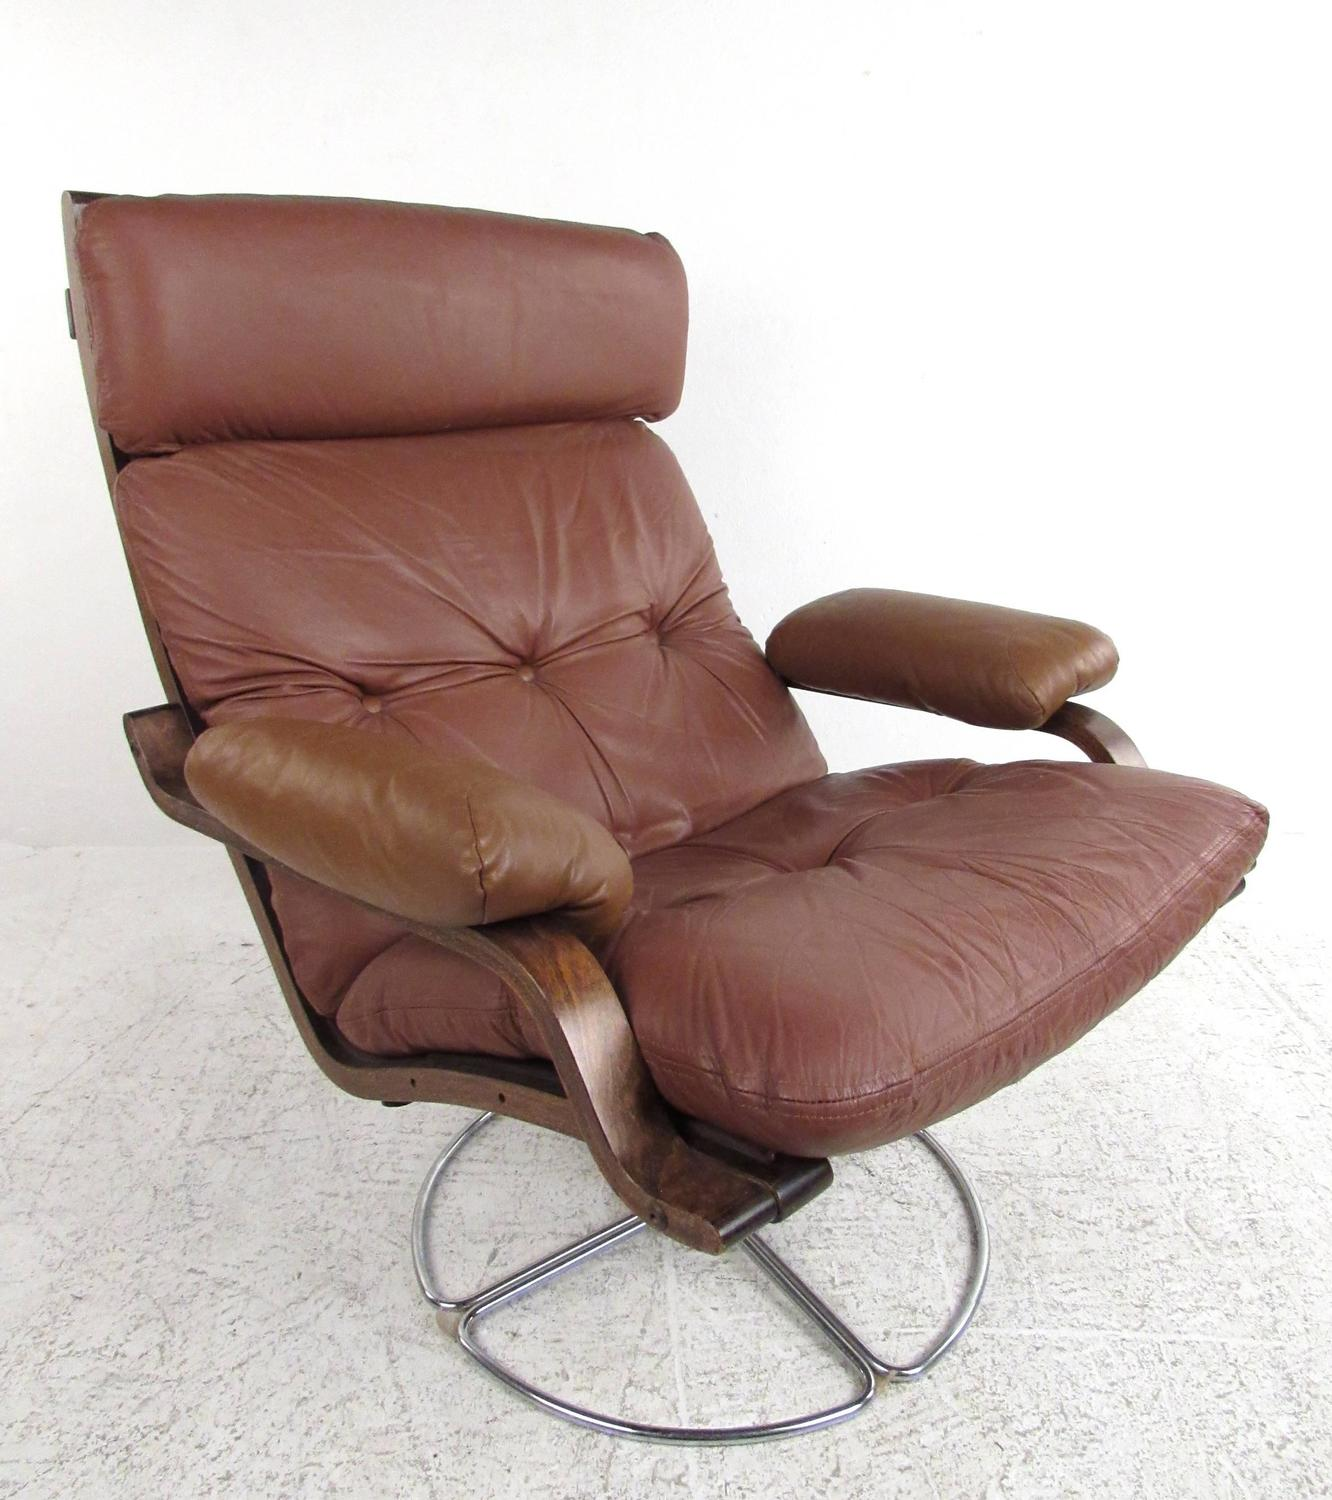 swivel club chair with ottoman harley davidson camping chairs vintage leather westnofa style lounge